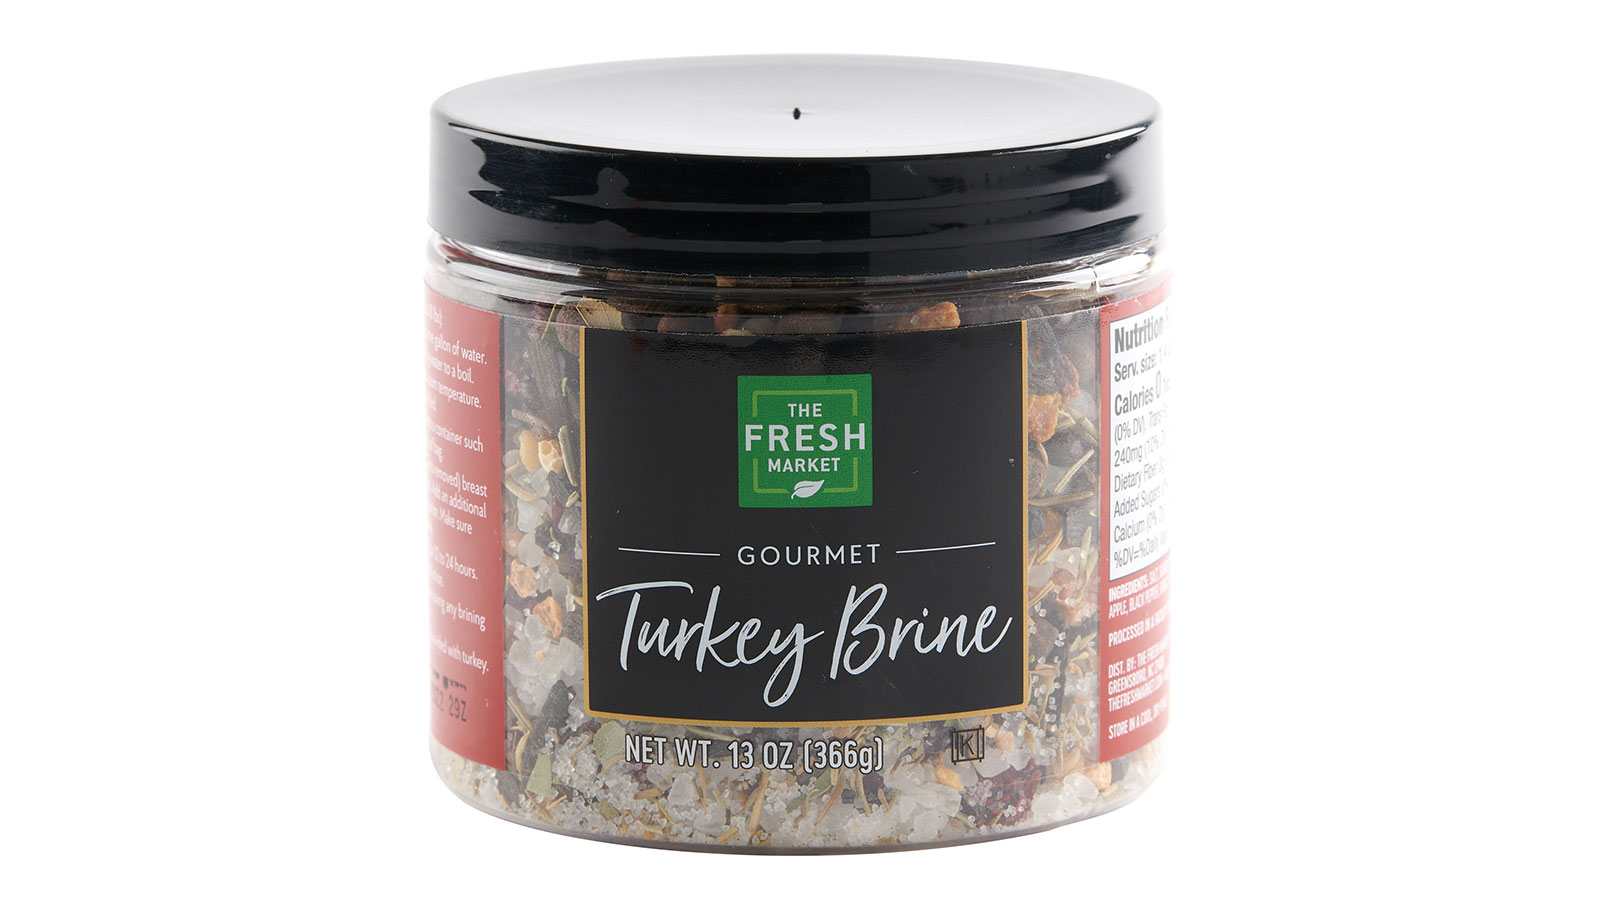 The Fresh Market Turkey Brine